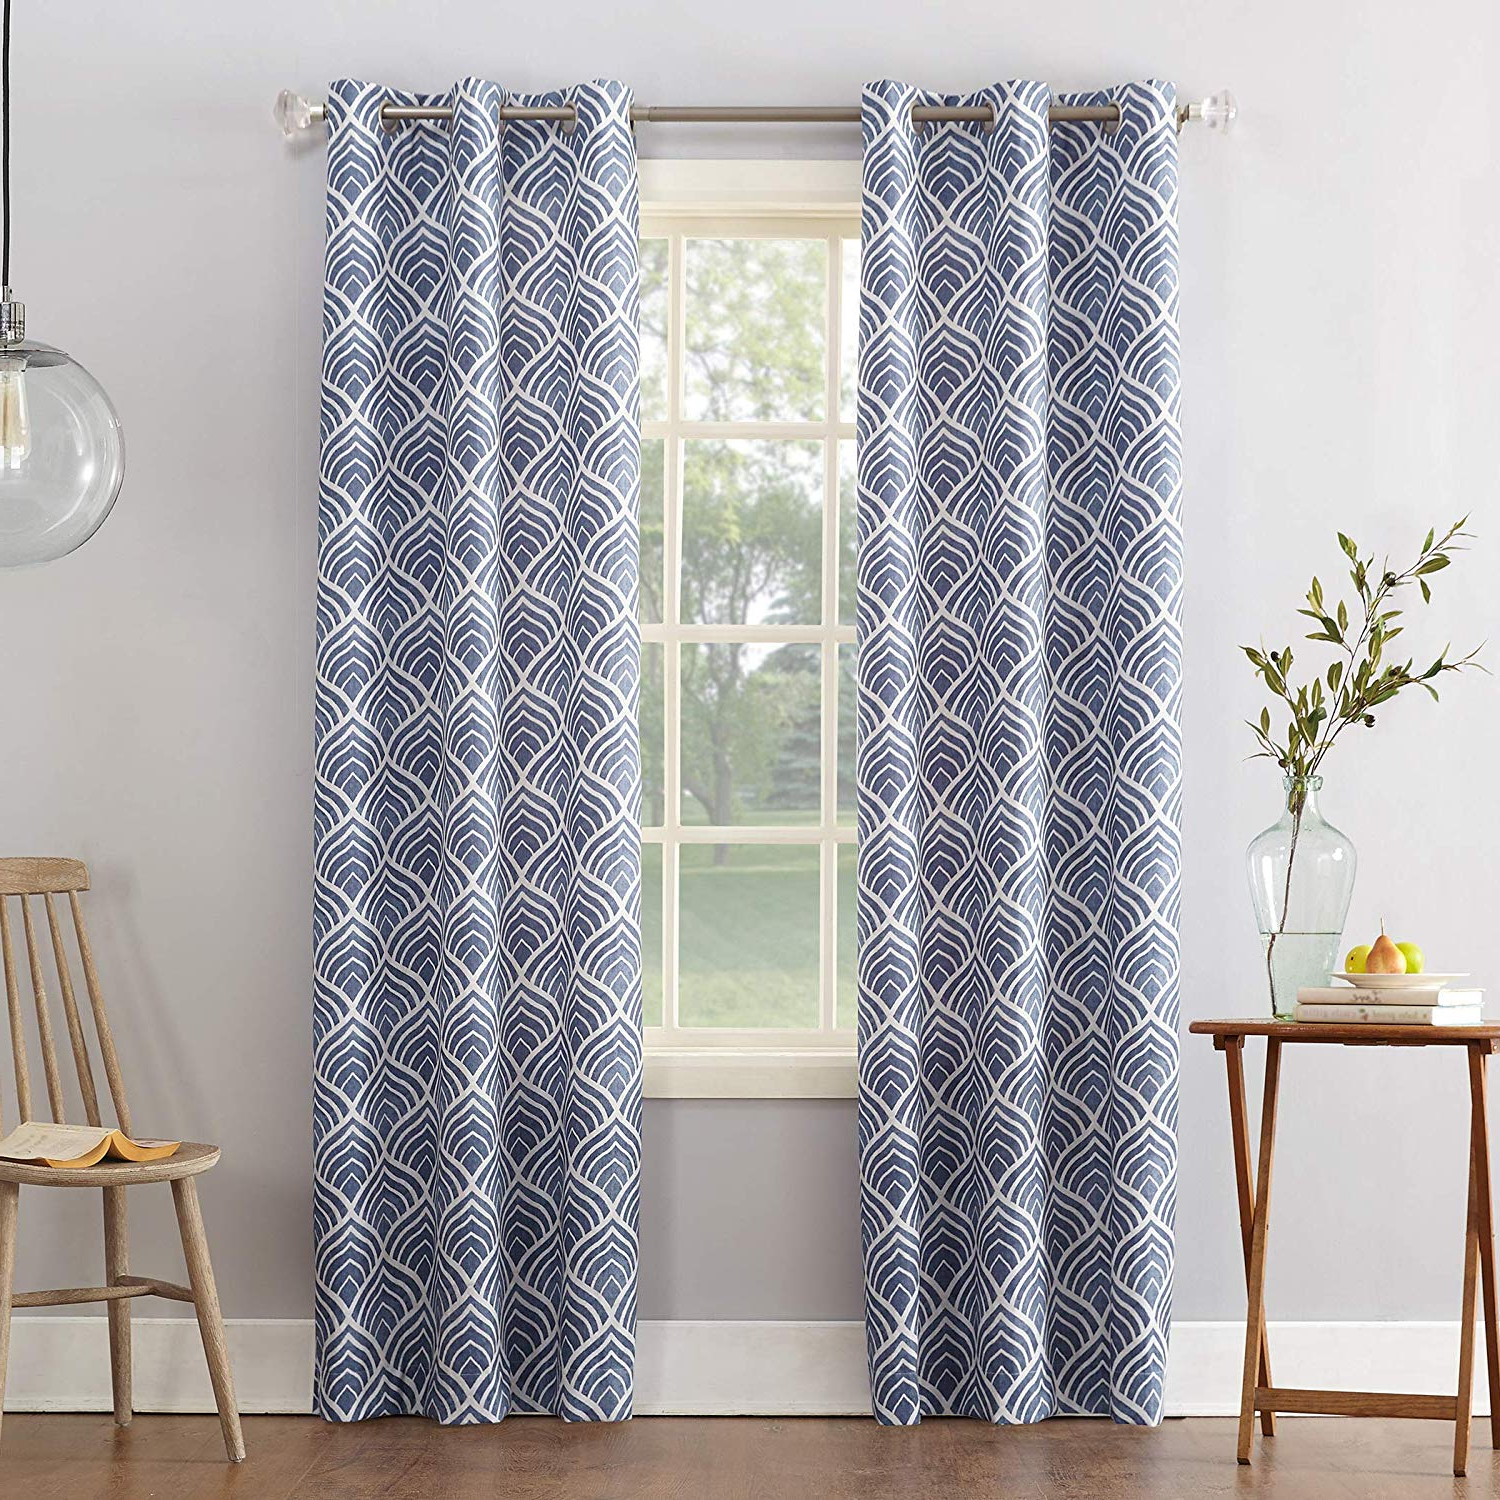 "Cooper Textured Thermal Insulated Grommet Curtain Panels Pertaining To Favorite Sun Zero Cooper Geometric Print Thermal Insulated Room Darkening Grommet  Curtain Panel 40"" X 84"" Blue (View 6 of 20)"